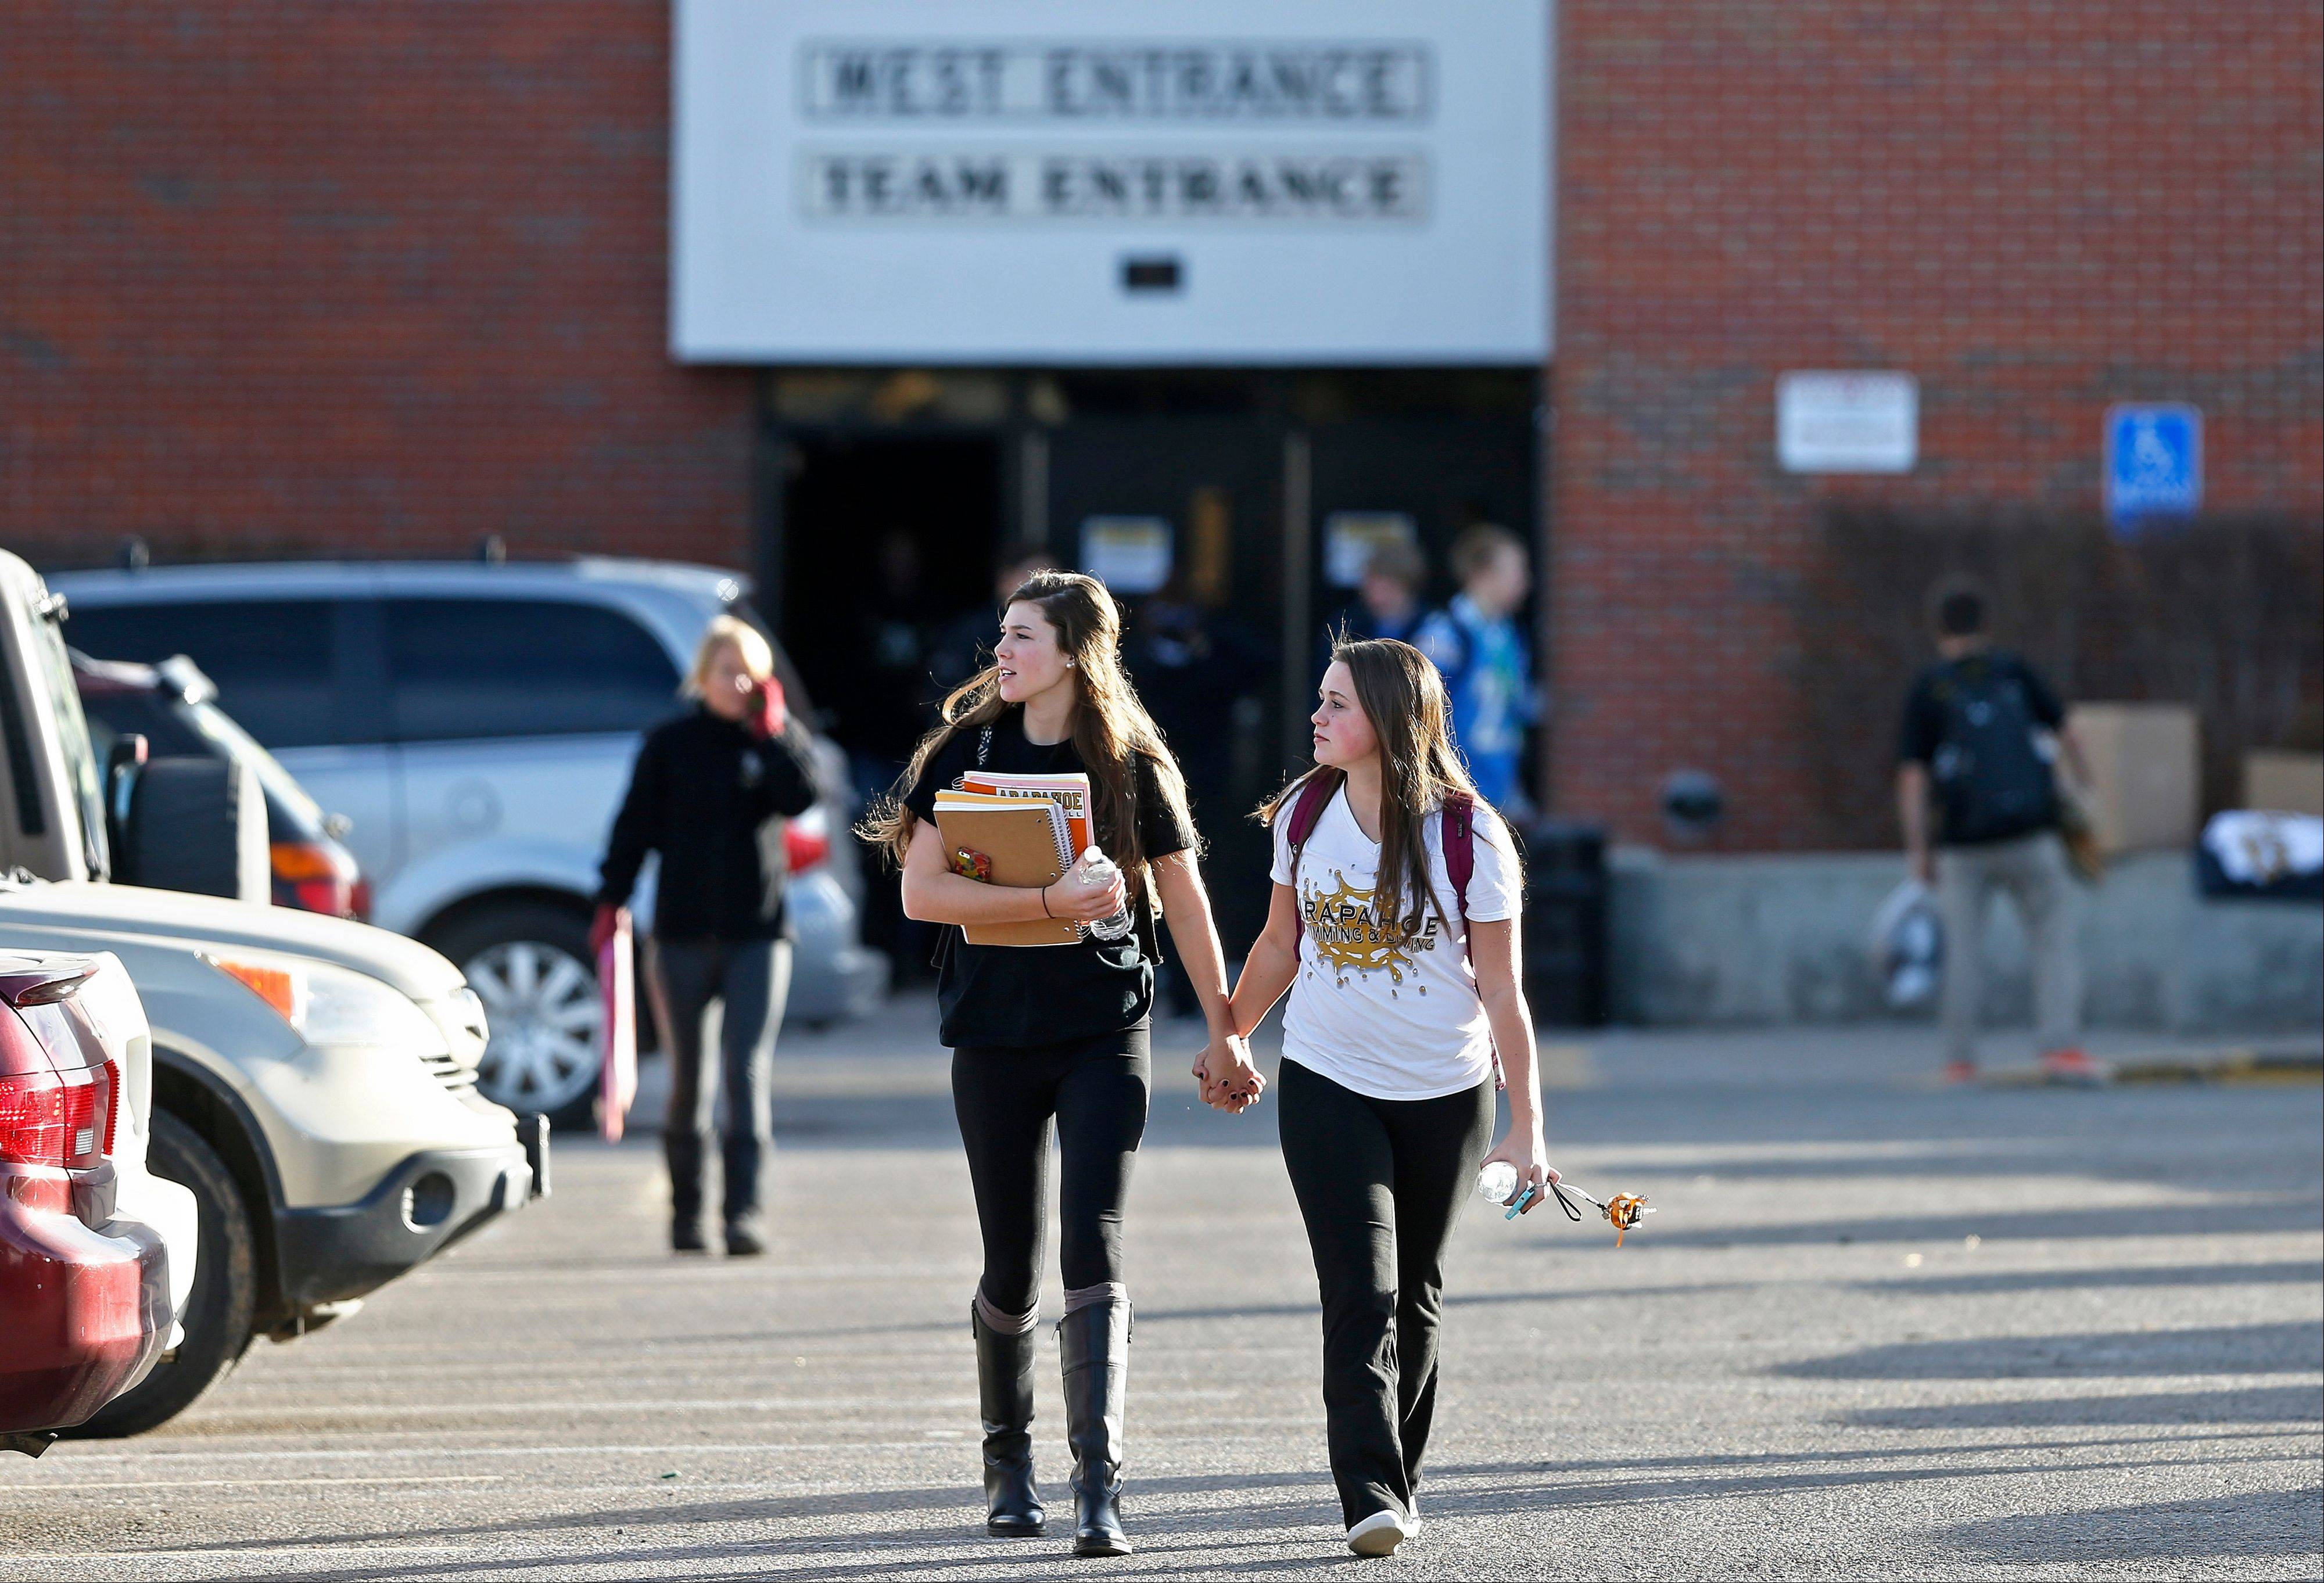 Arapahoe High School students leave their school Thursday on a day in which students were allowed back in to the building to retrieve their belongings, six days after a shooting attack at Arapahoe High School in Centennial, Colo.